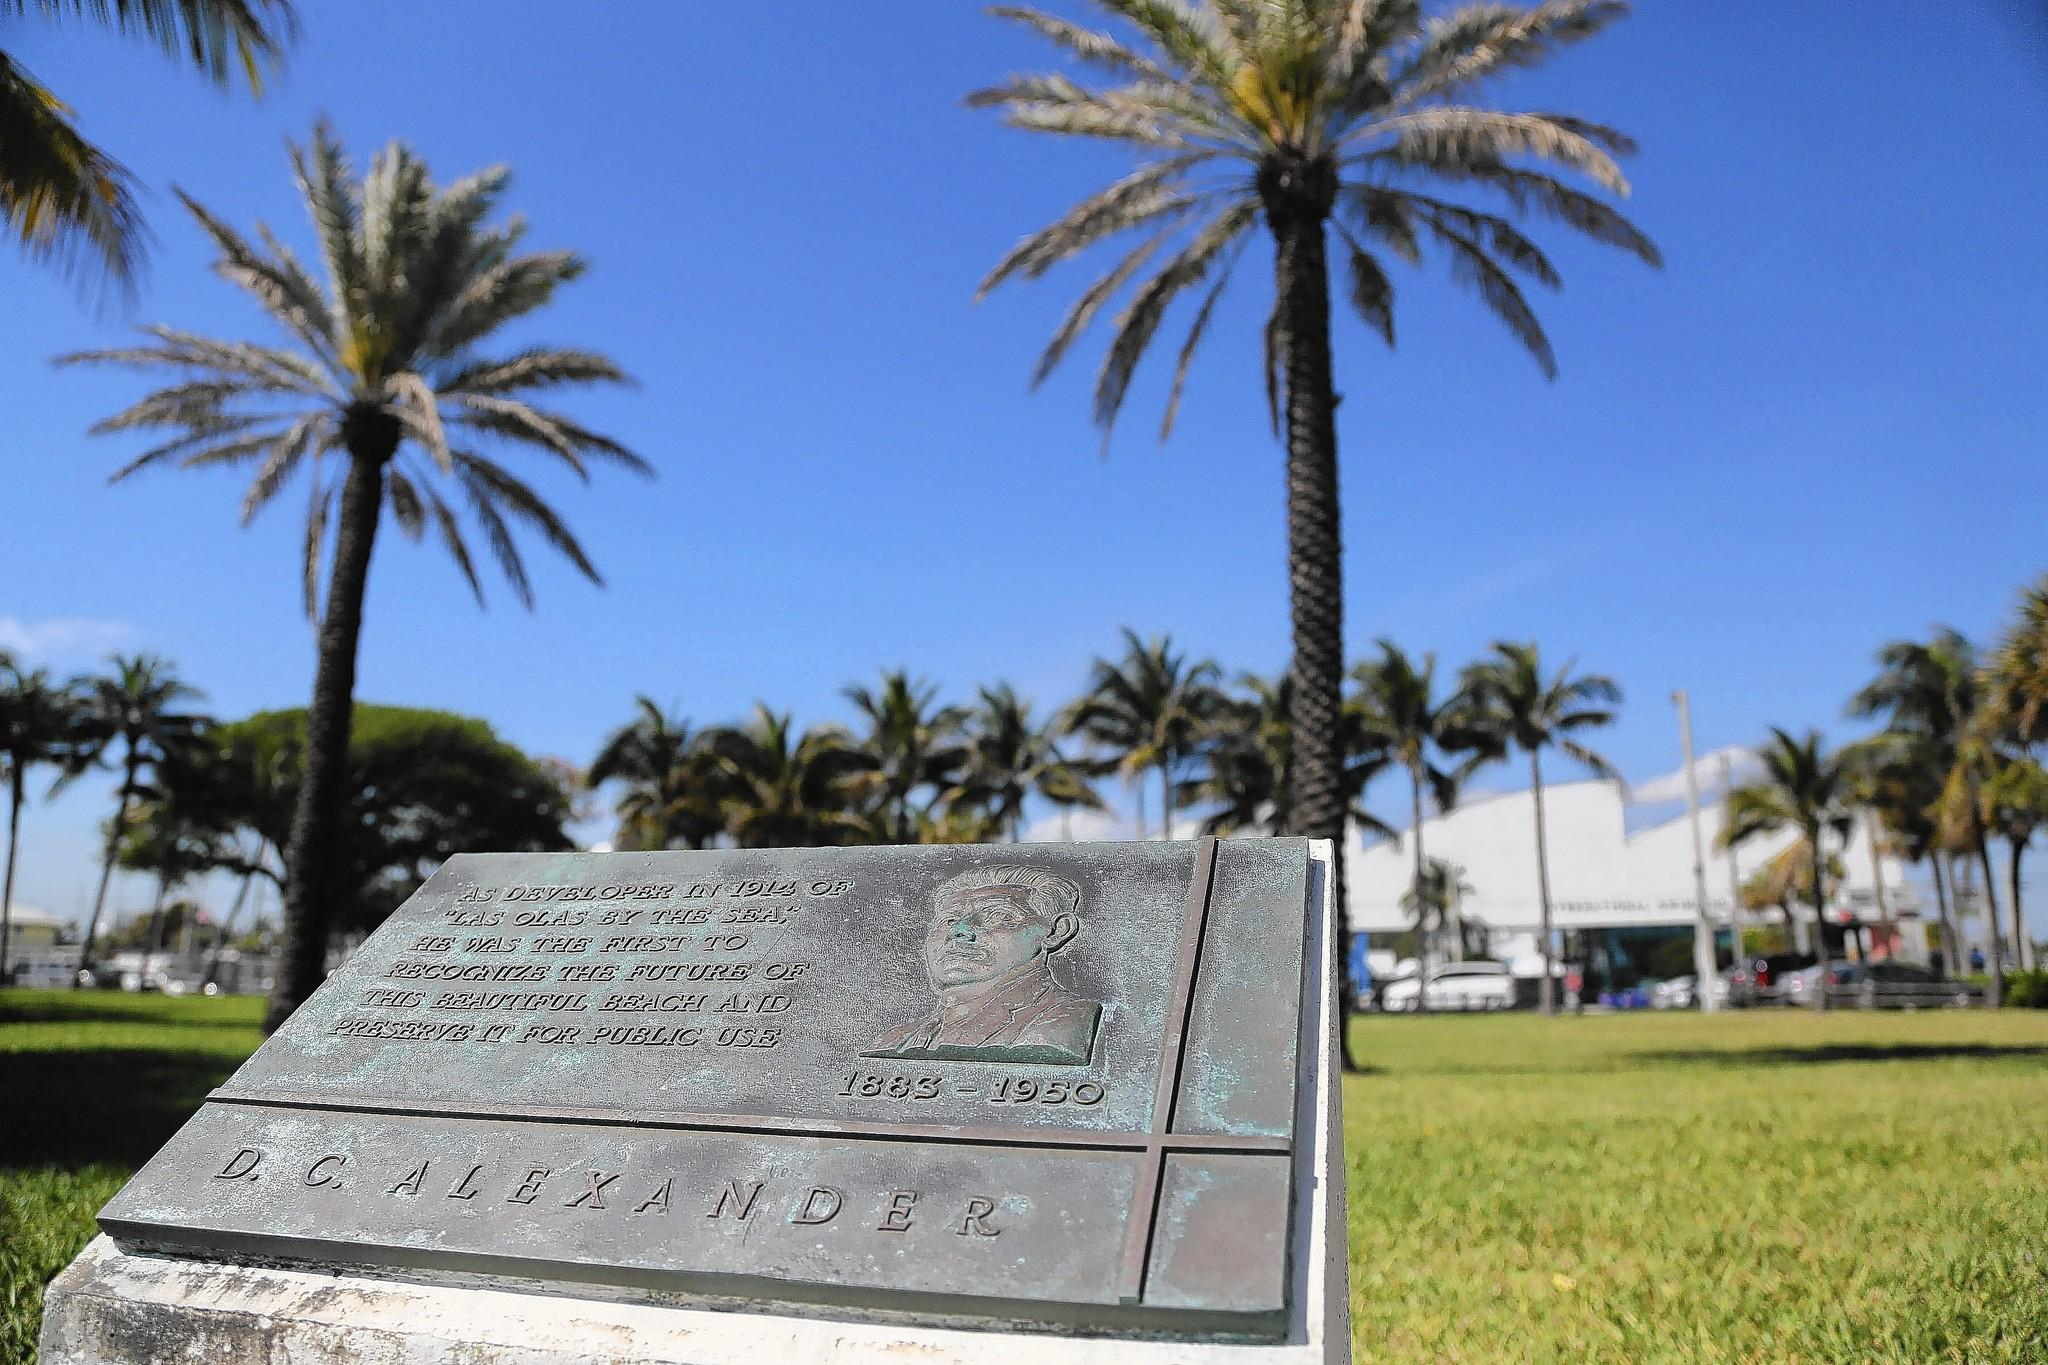 Fort Lauderdale commissioners discussed Tuesday plans for D.C. Alexander Park near the beach.